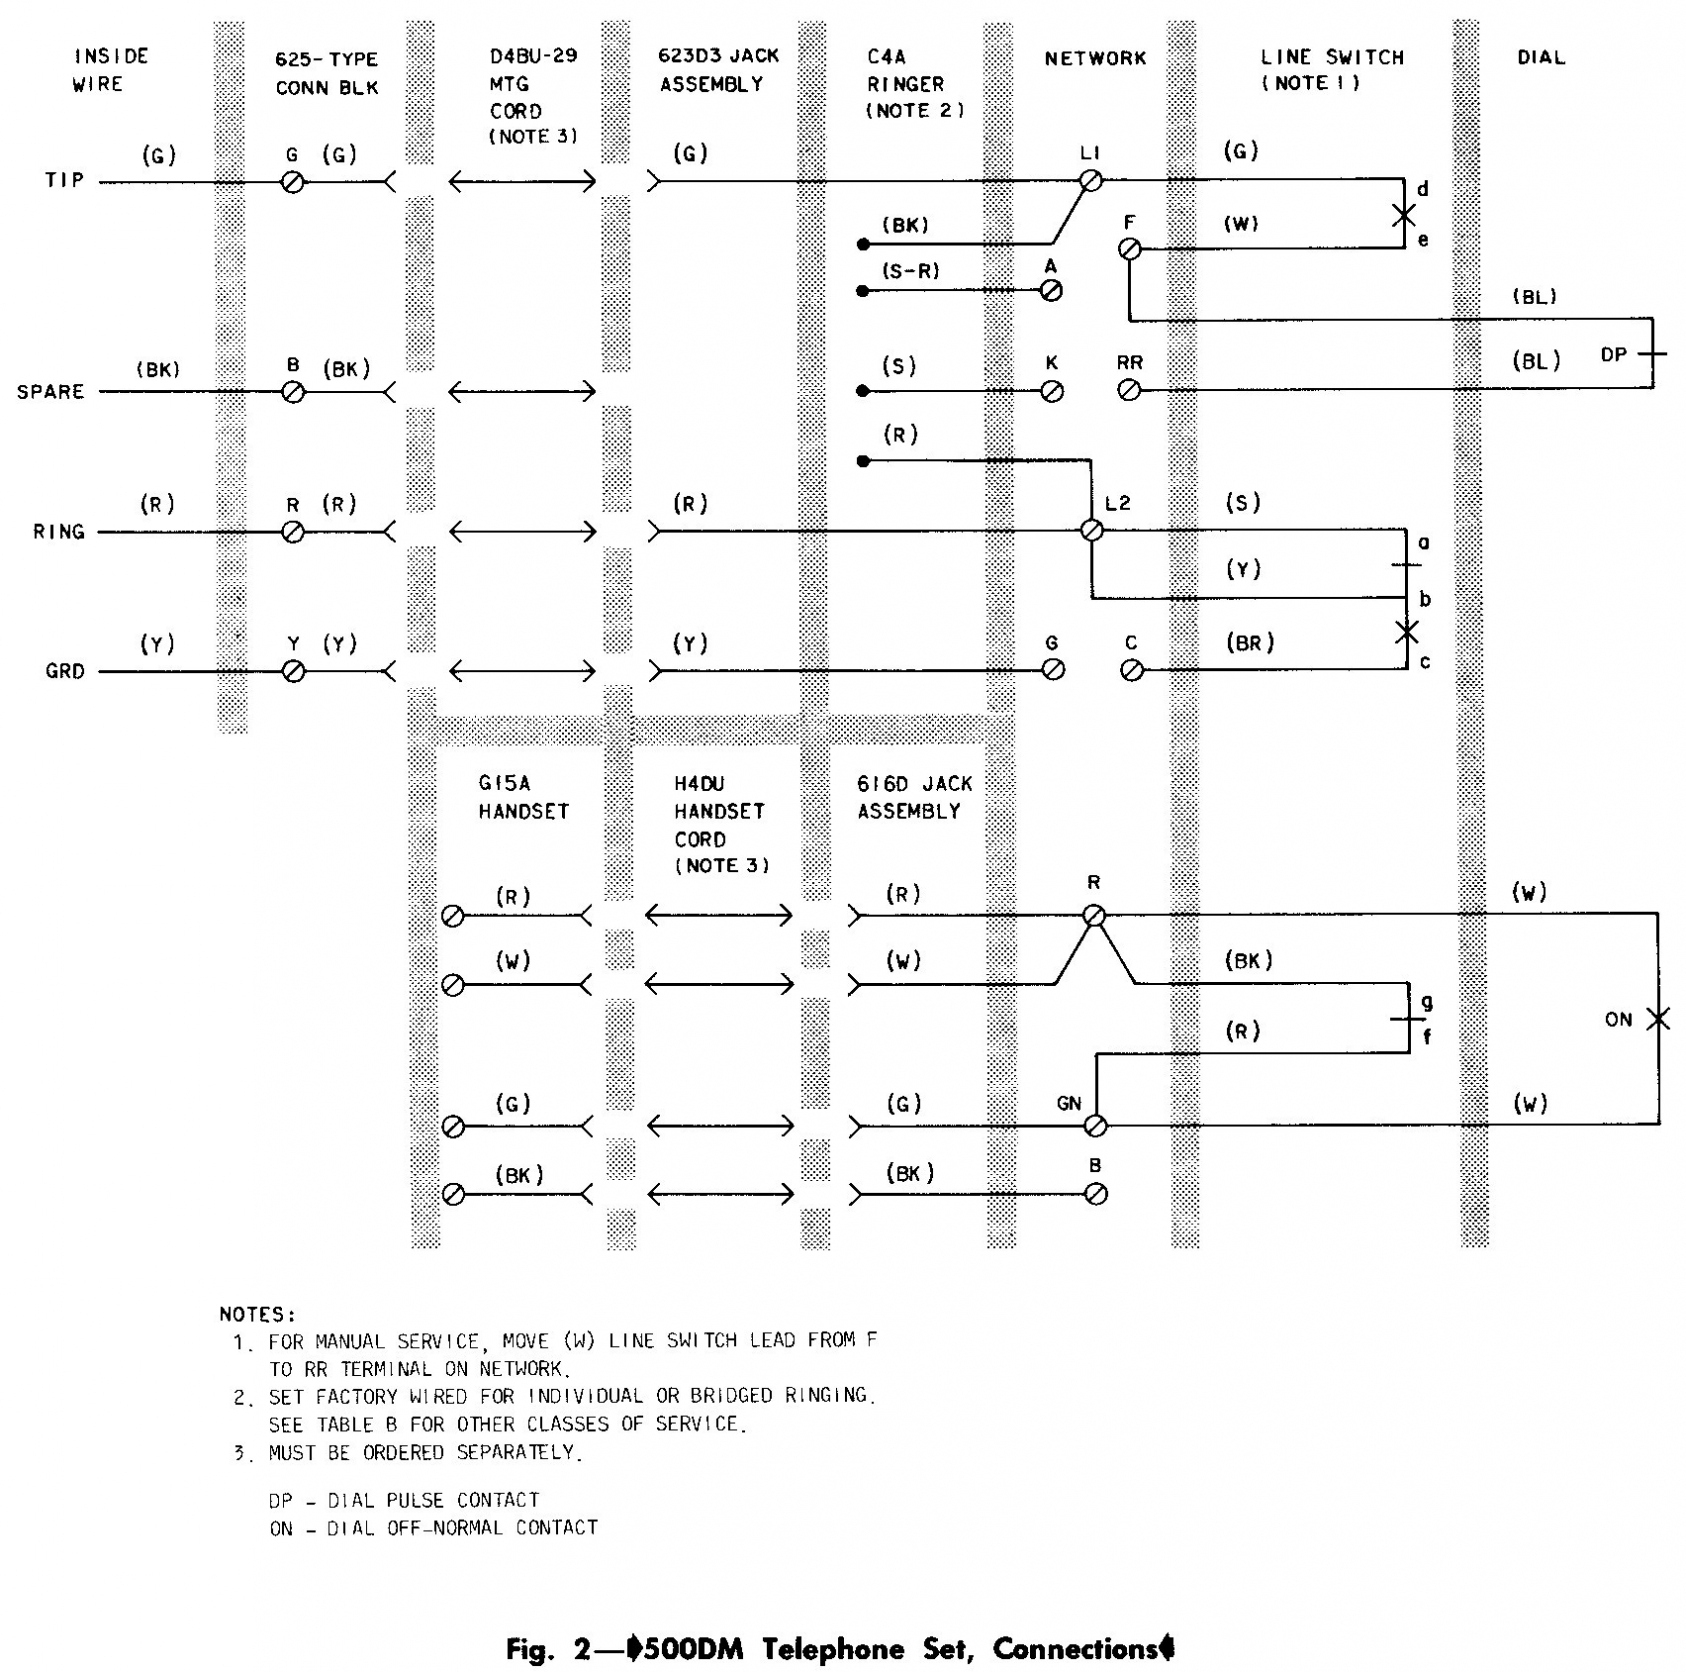 Cat5e Telephone Wiring Diagram